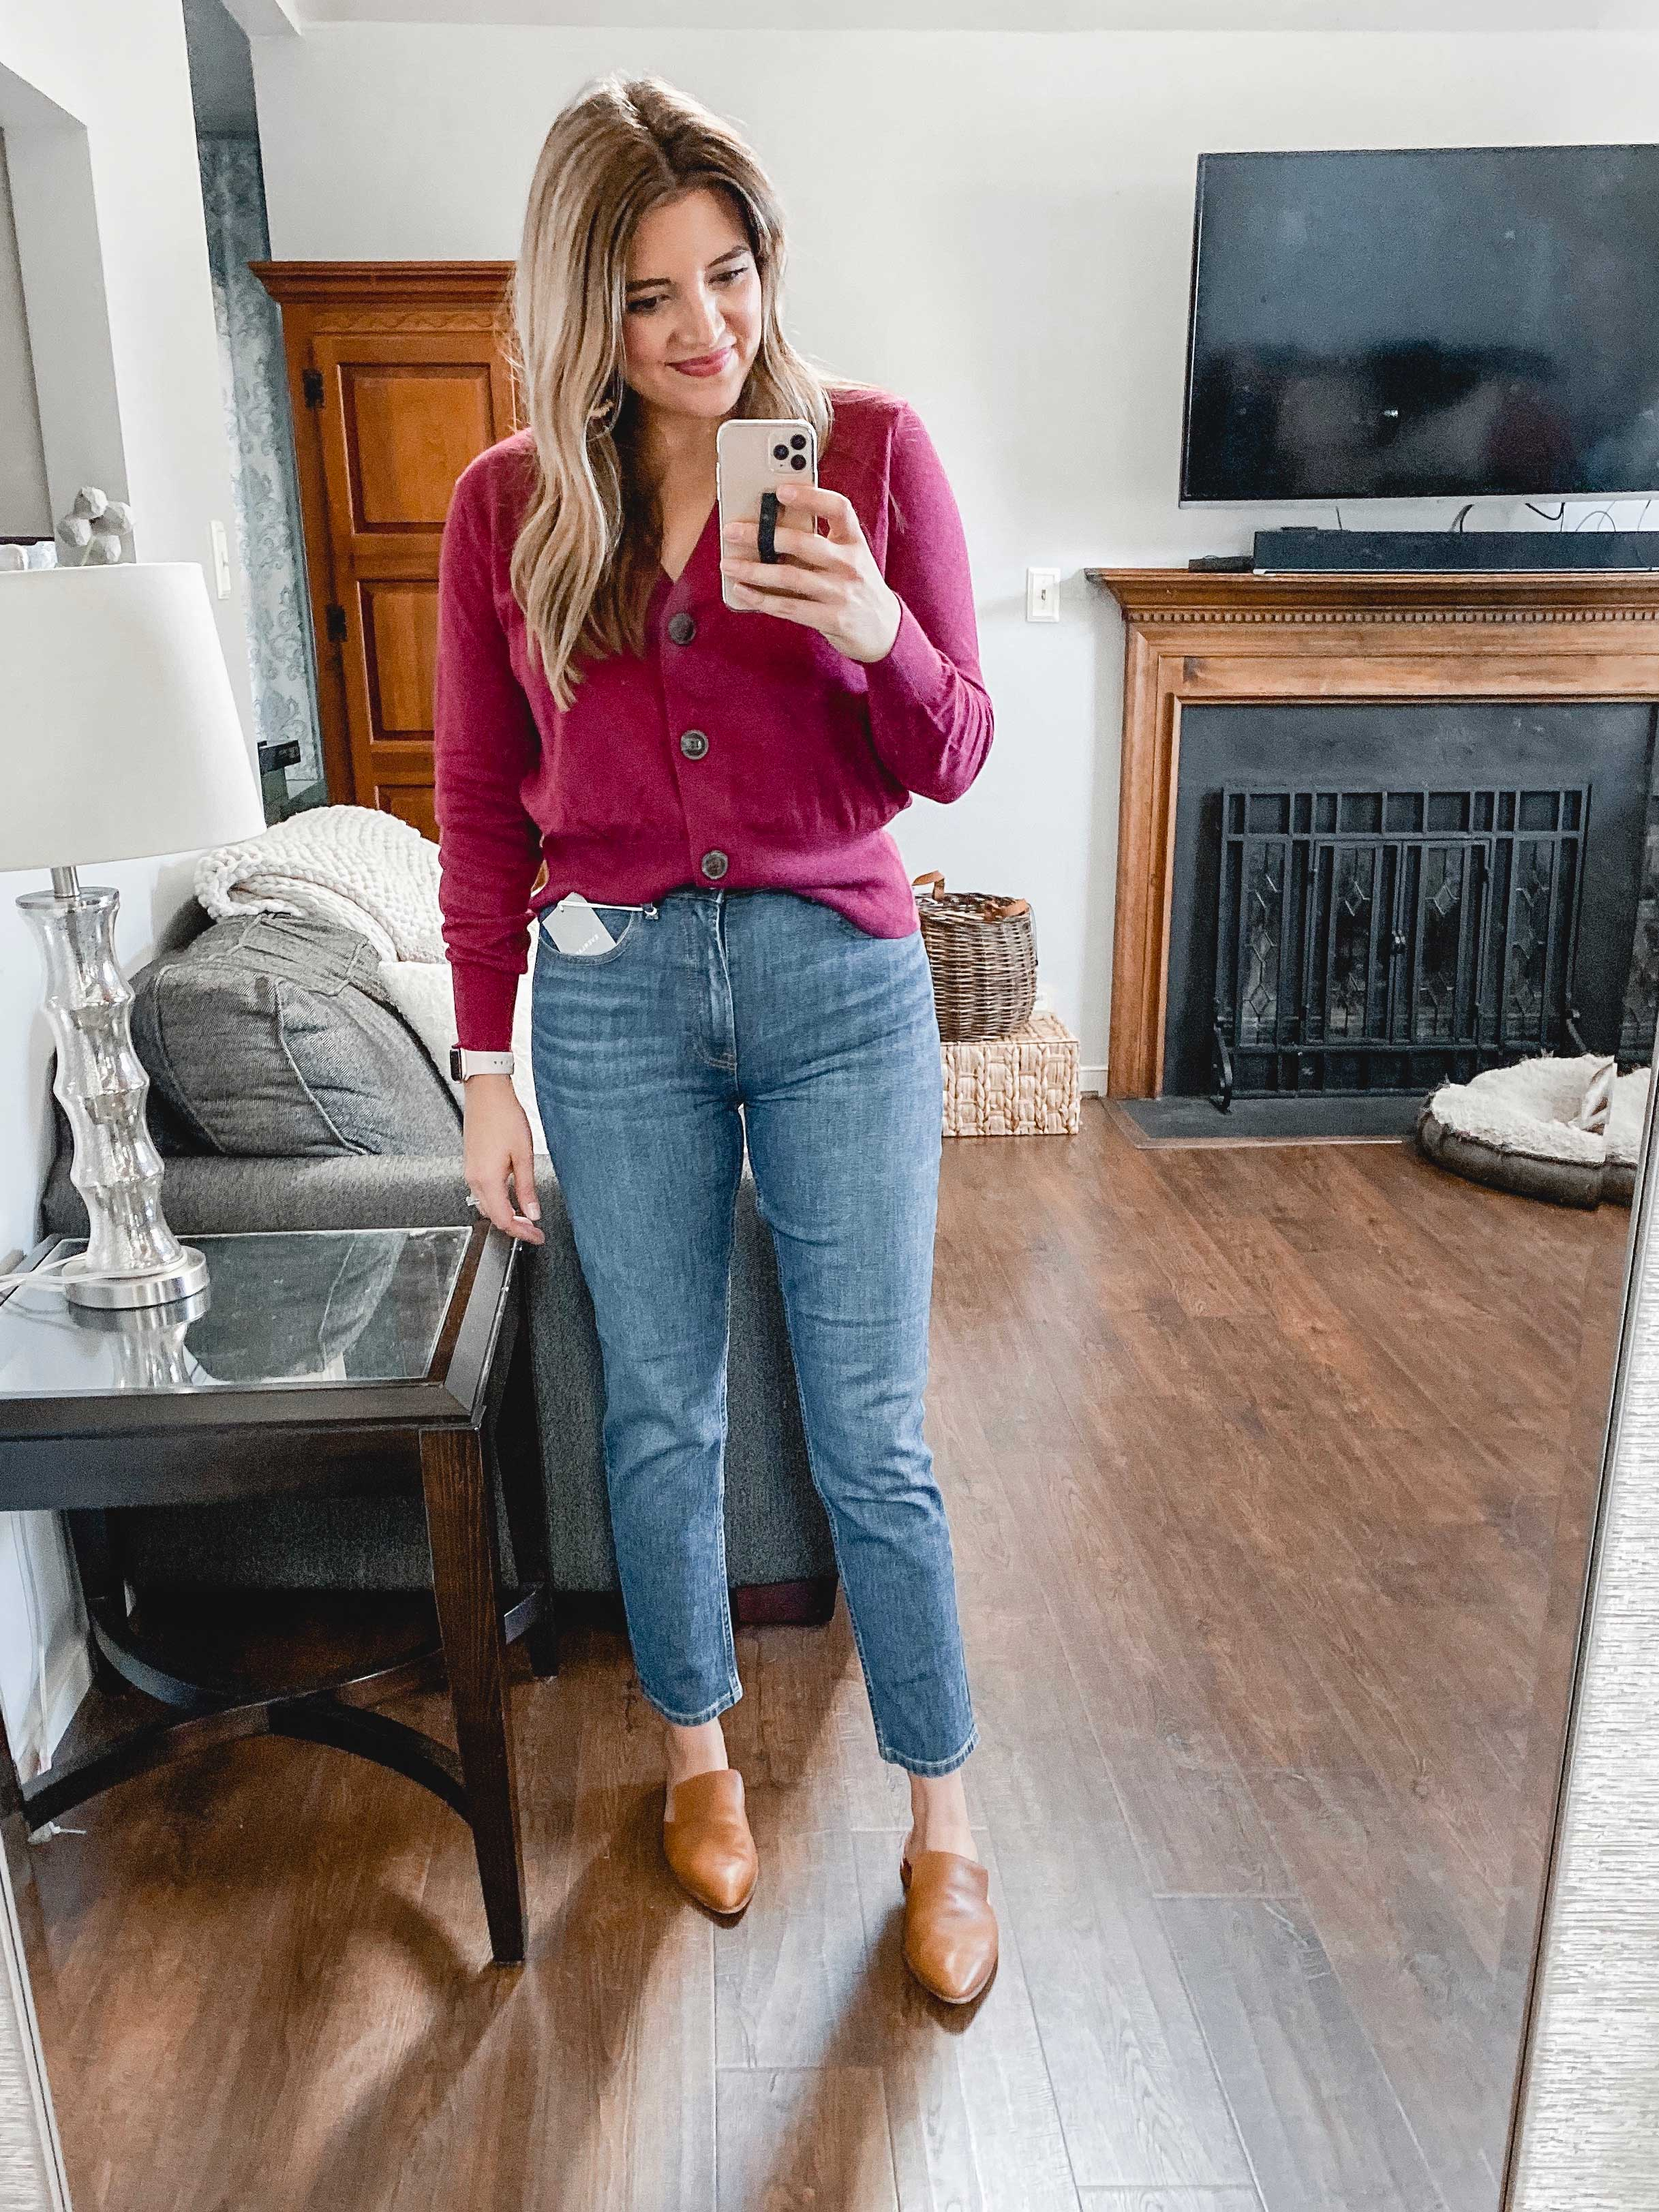 Richmond Virginia blogger, Lauren Dix, tries on seven styles of Everlane jeans and compares each style in her Everlane jeans review!